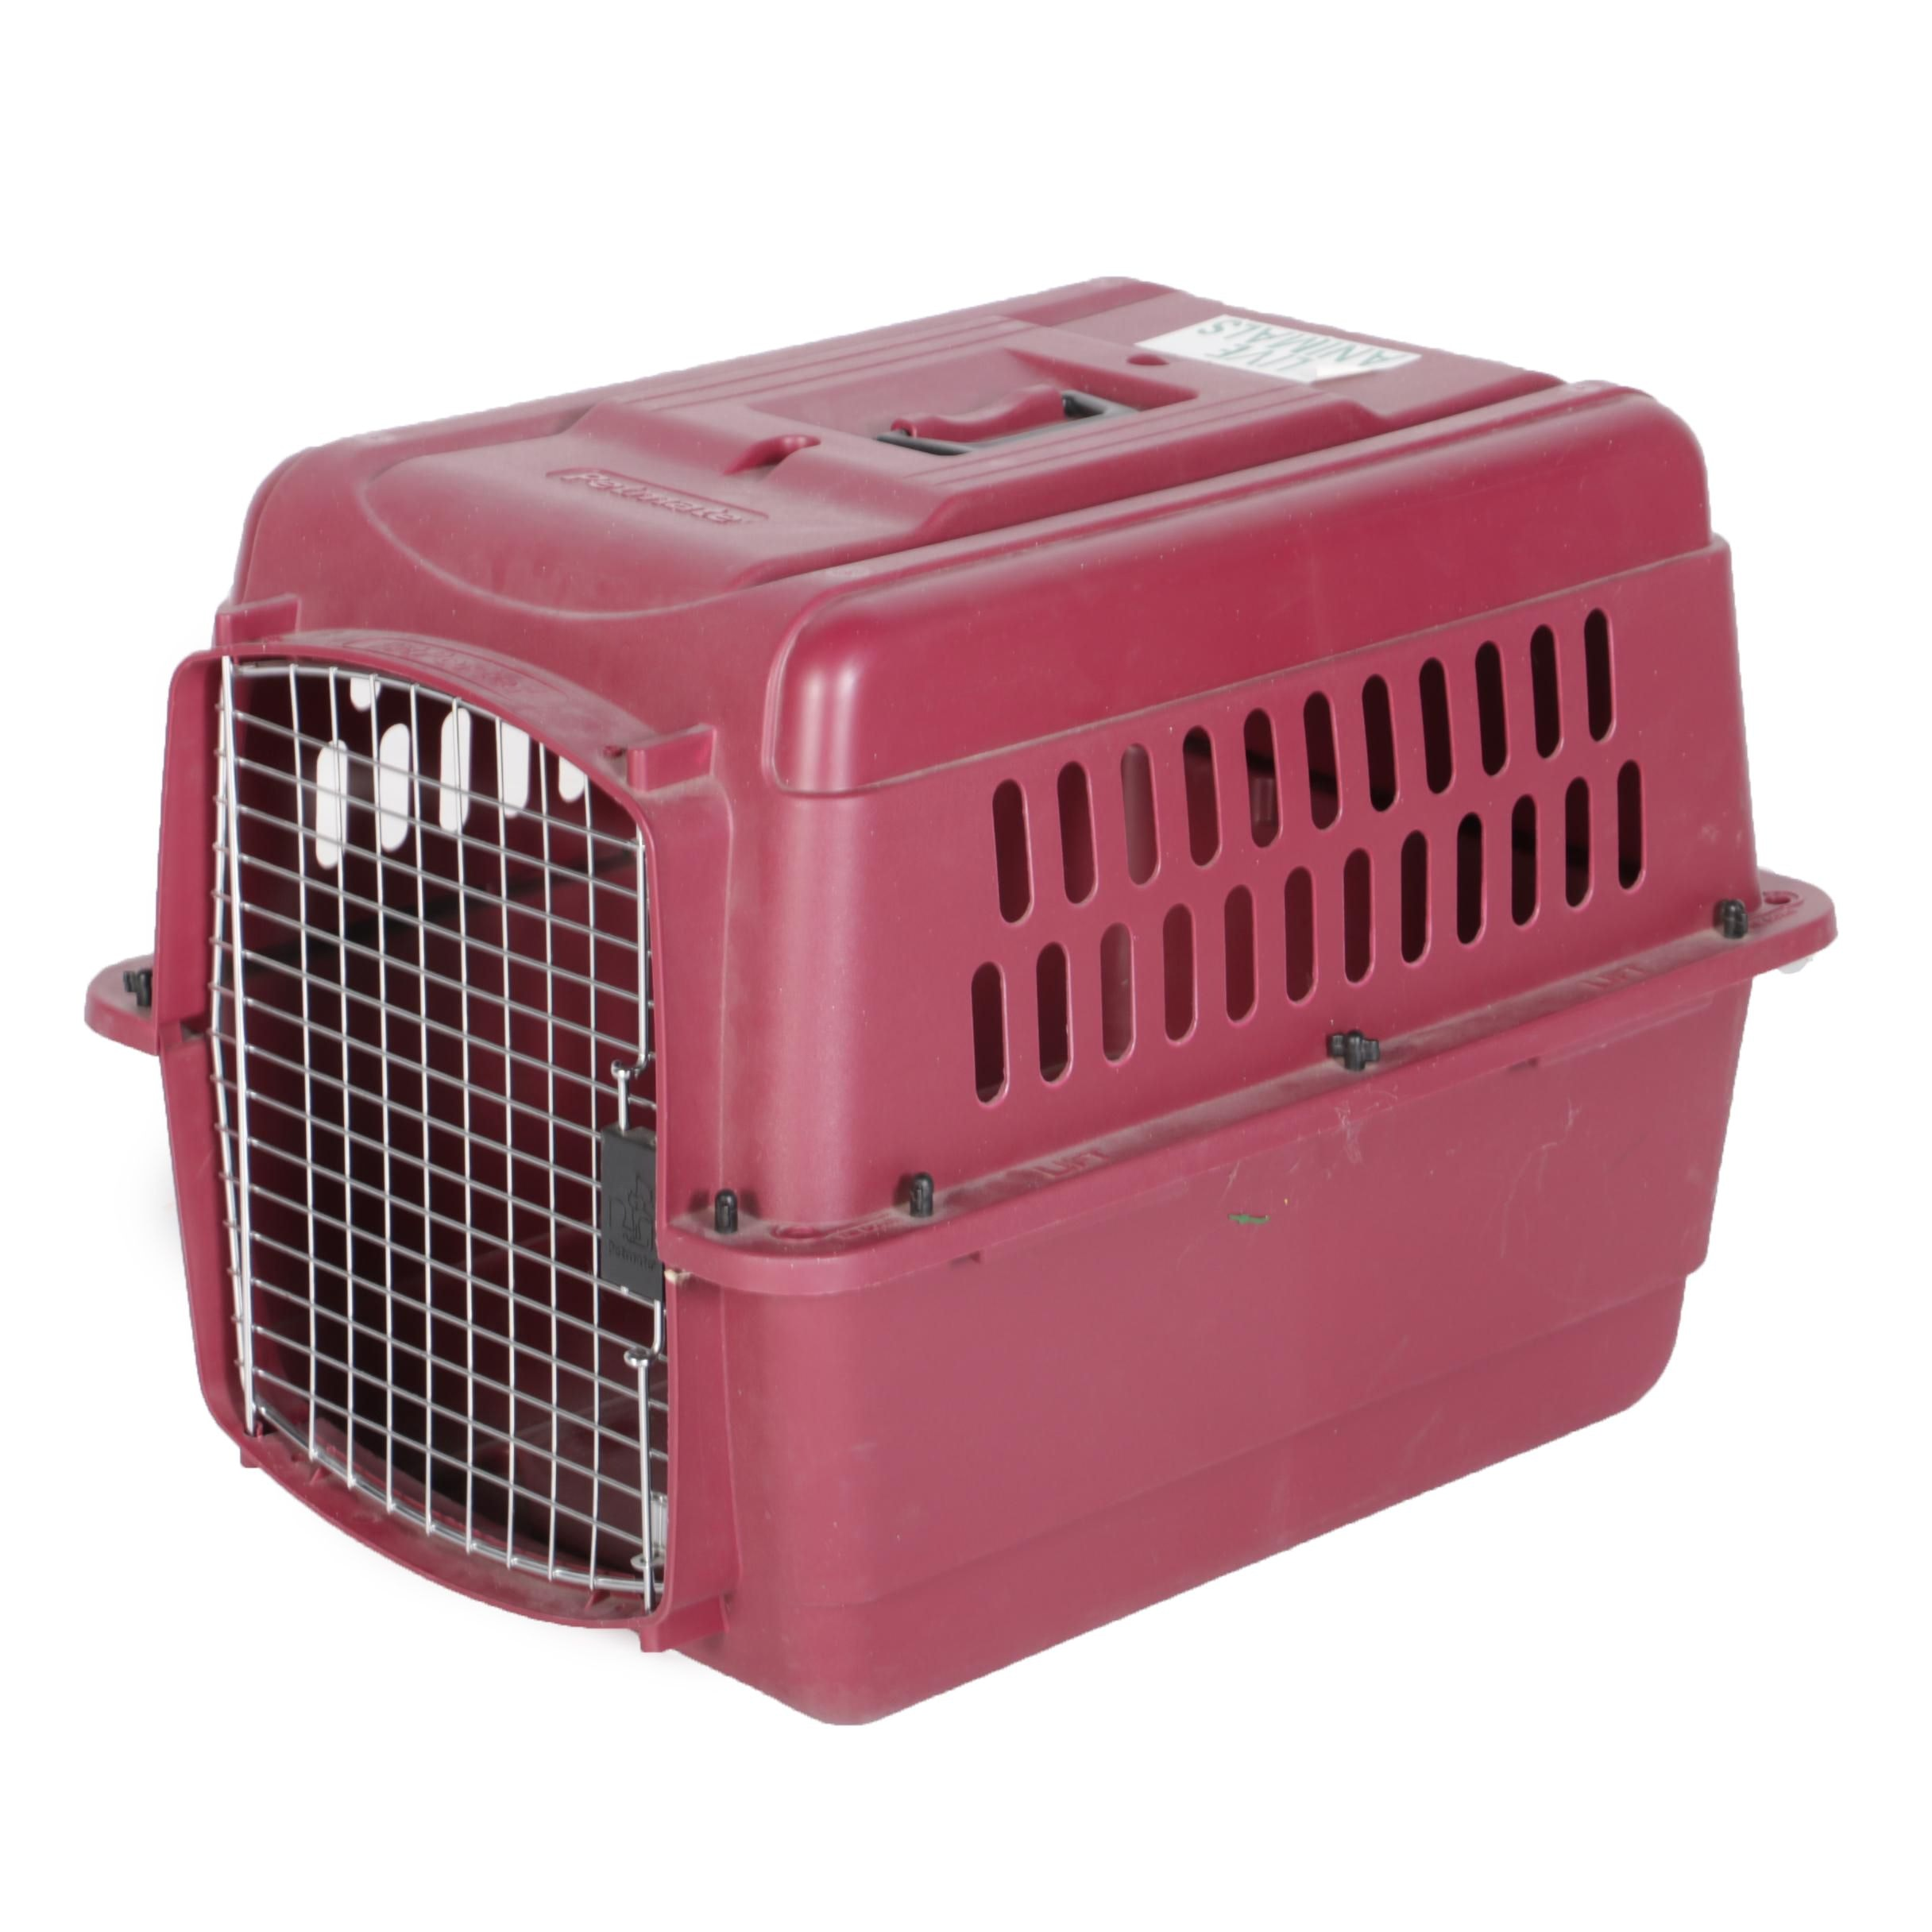 Petmate High Impact Pink Plastic Travel Kennel